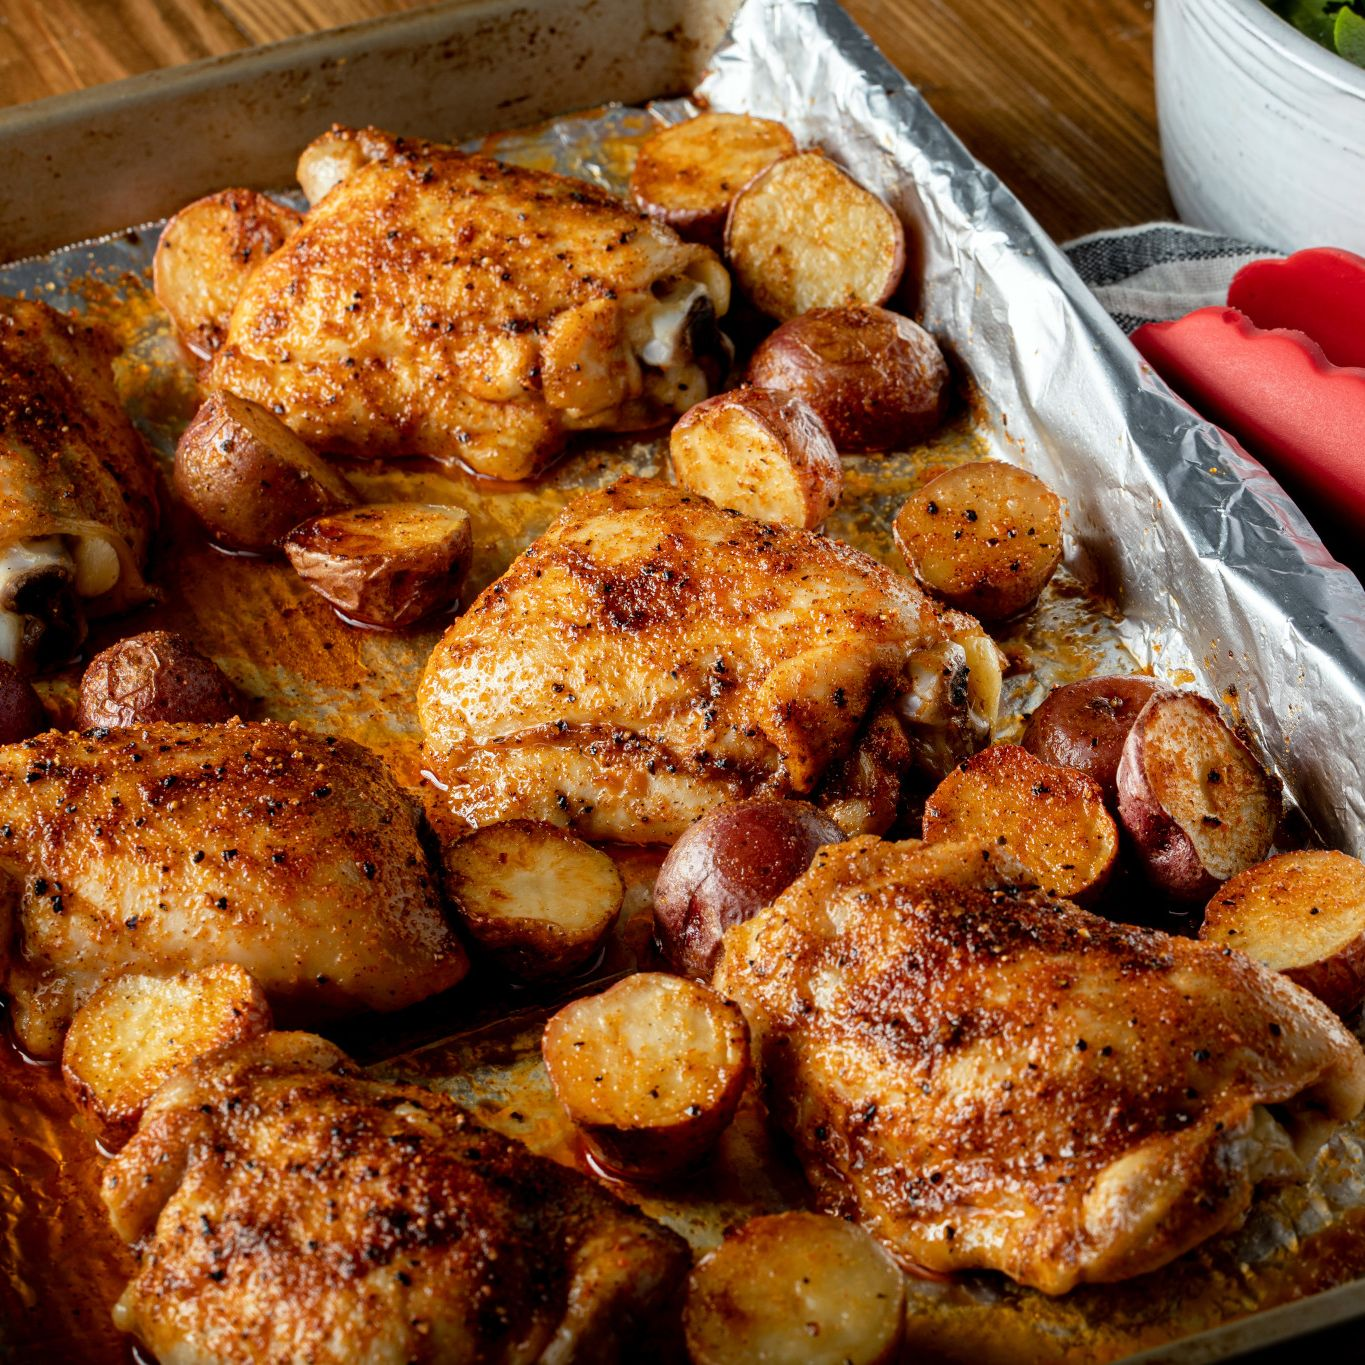 Rotisserie Roasted Chicken with Potatoes